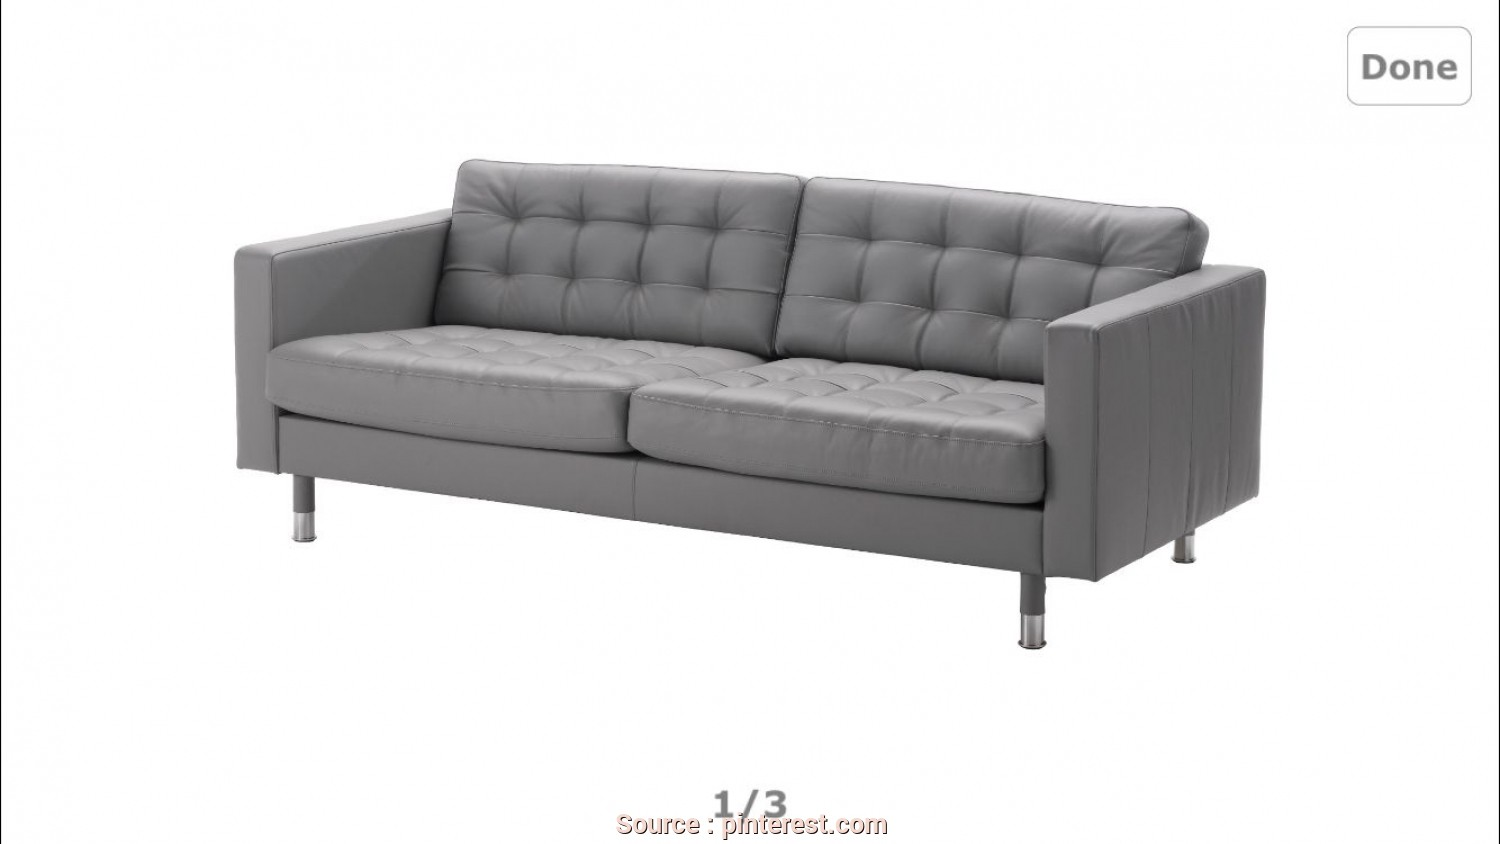 Futon Ikea Lyon, Originale IKEA Grey Leather Sofa, Living Room, Sofa, Landskrona Sofa, Ikea